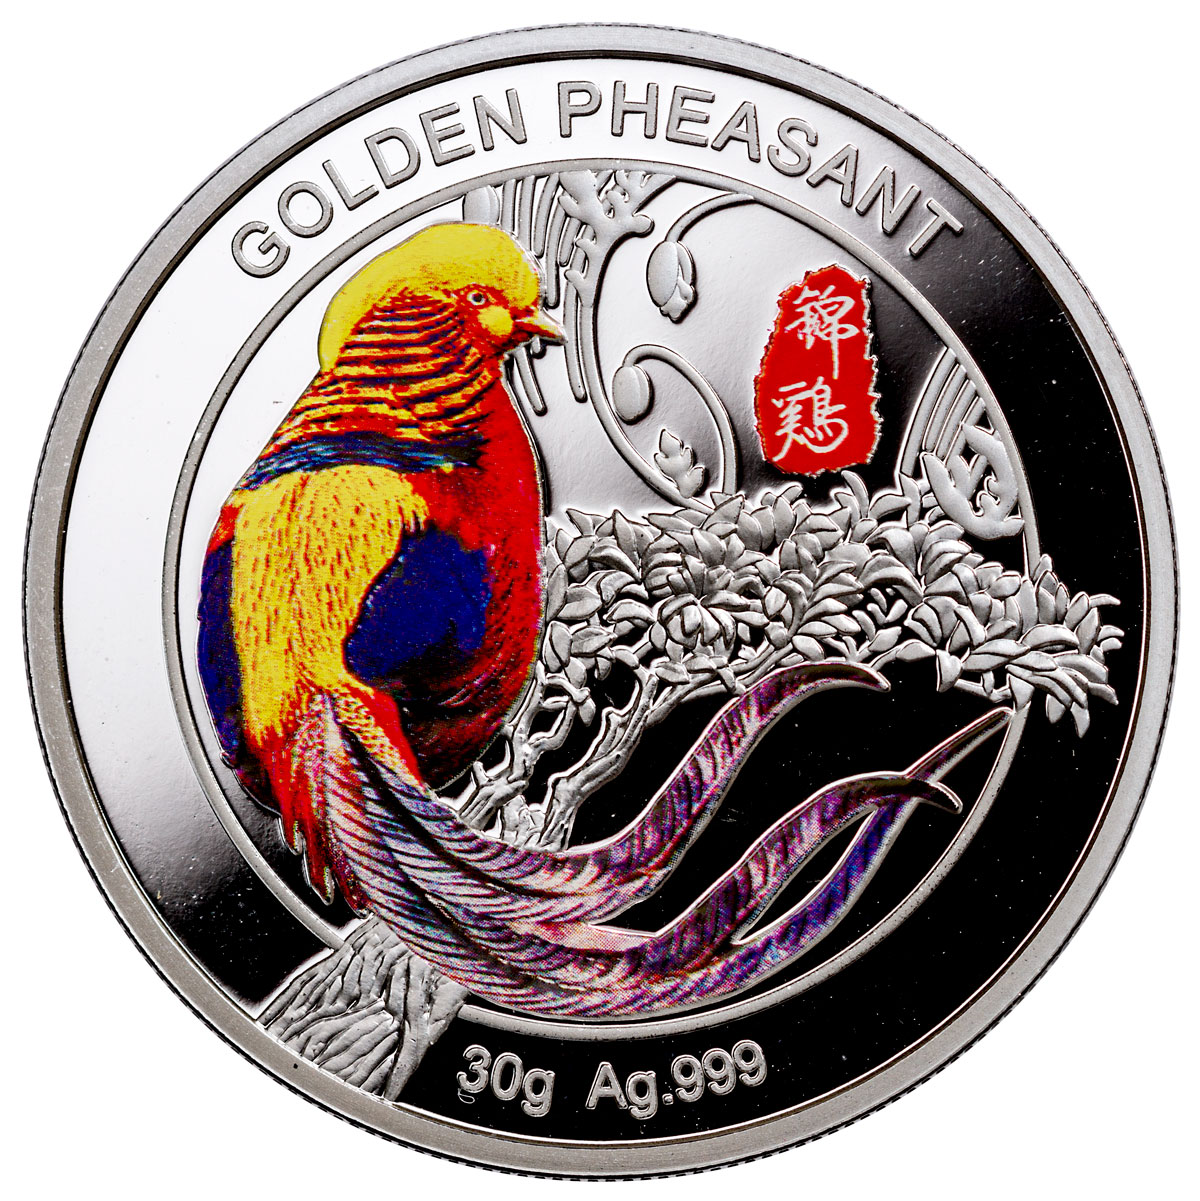 2017 China Golden Pheasant - 30 g Silver Colorized Proof GEM Proof Original Mint Capsule